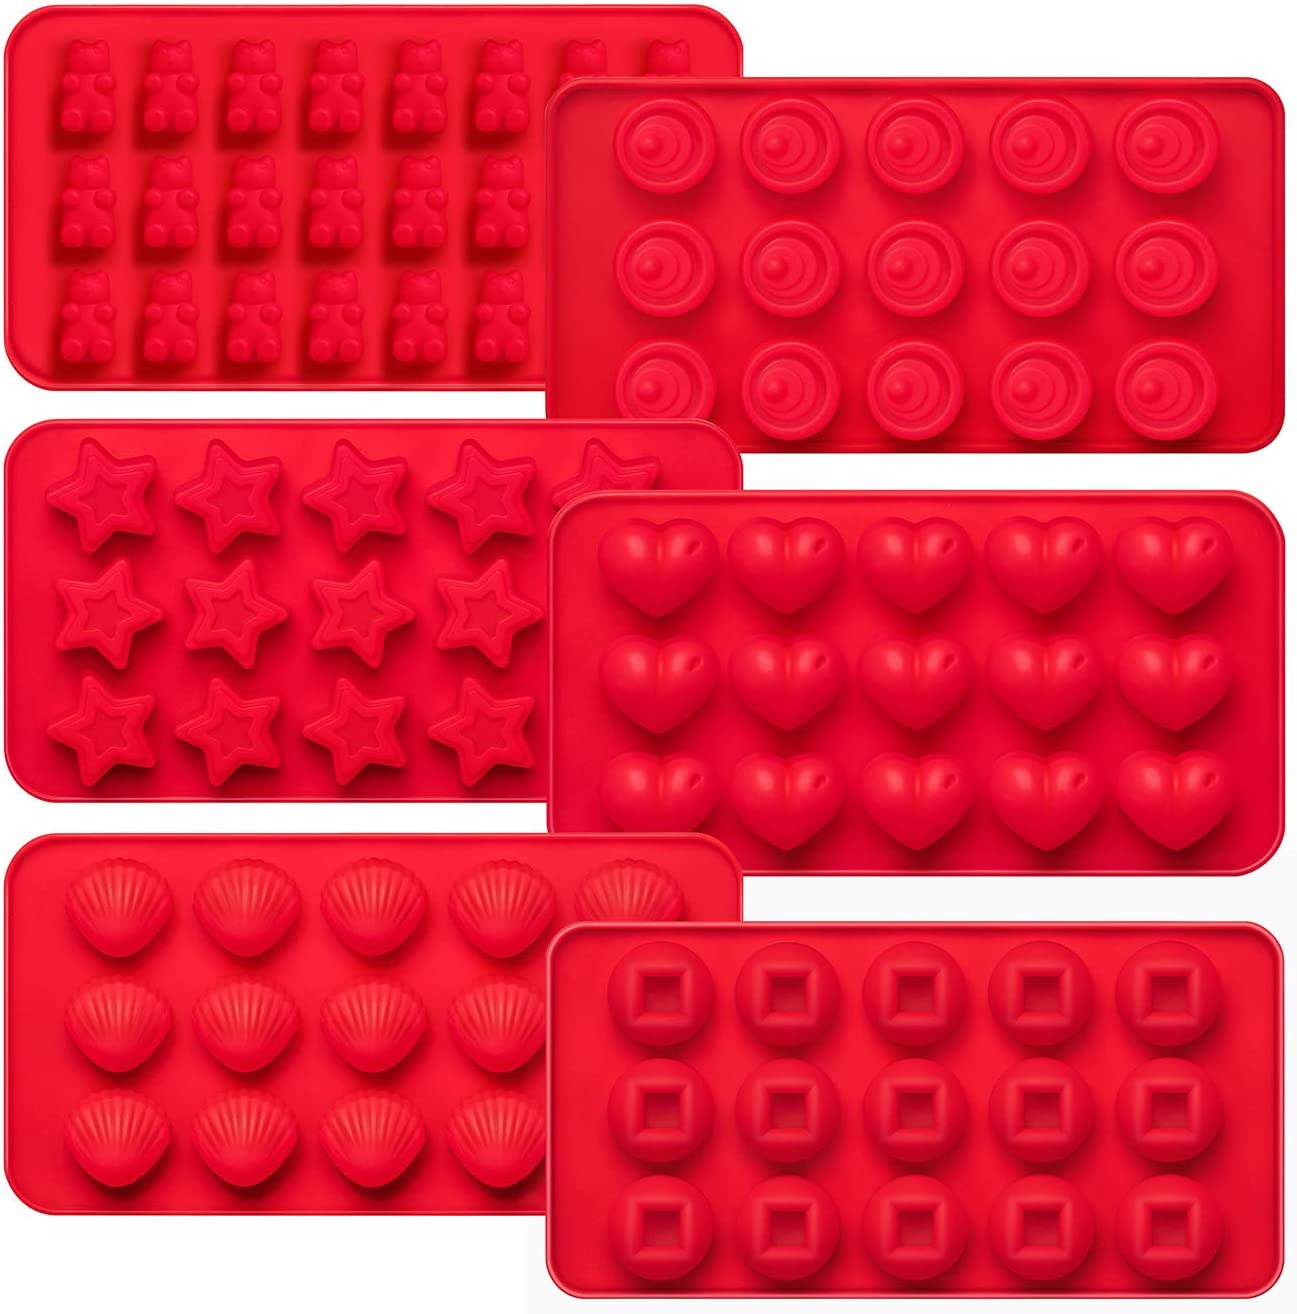 Strawberry Chocolate Candy Mold Candy Making 117 NEW